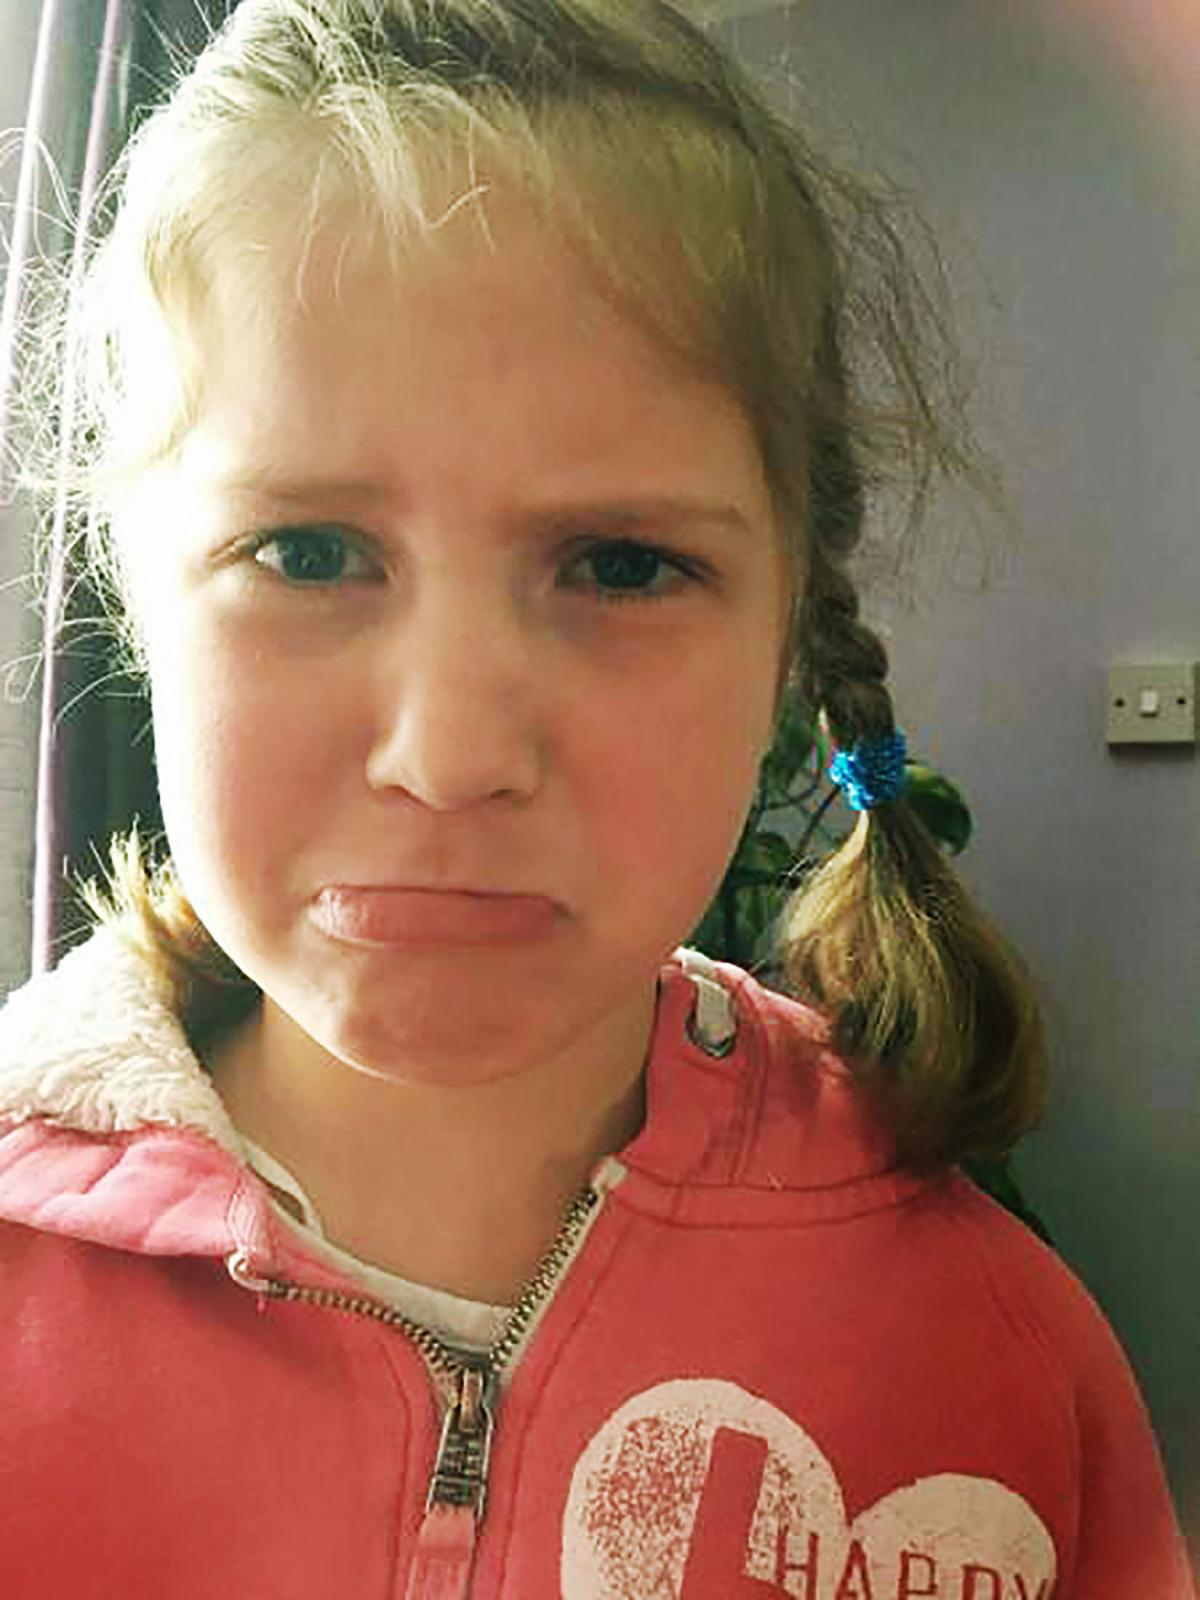 Youngster Finds Dead Ants In Her Cadbury Easter Egg The Oxford Times